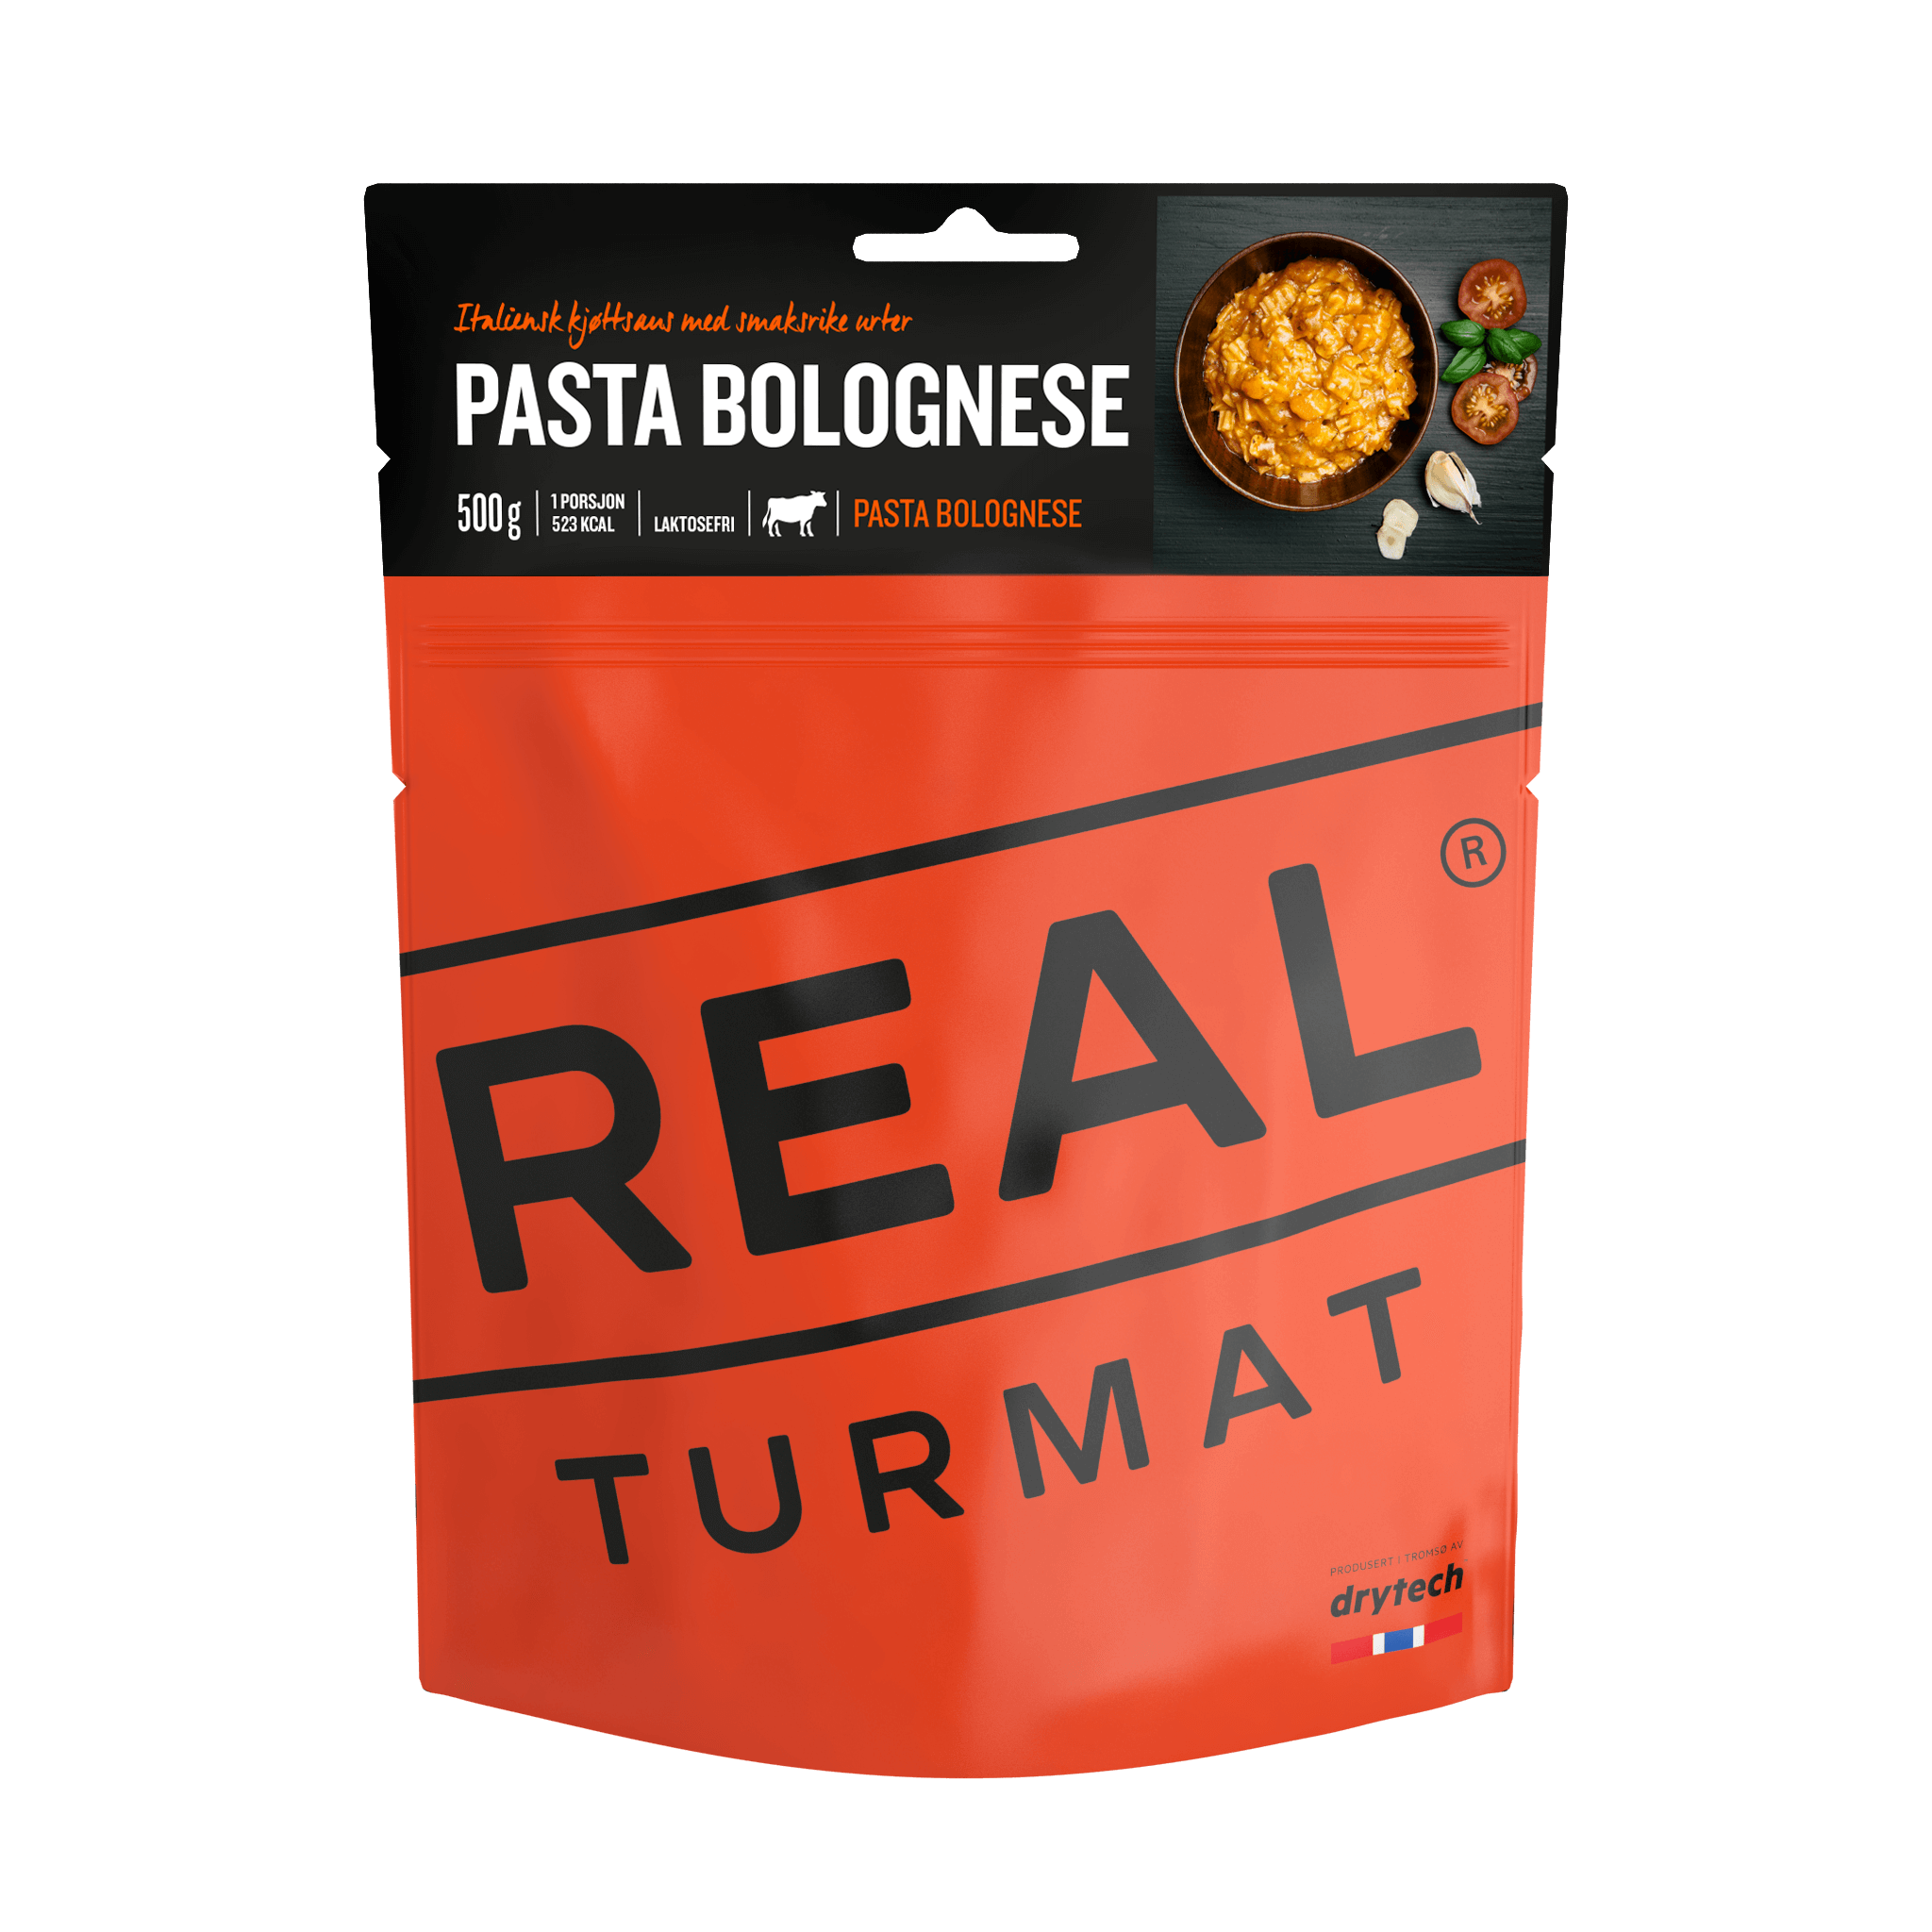 Delicious dried food for every adventure by Real Turmat